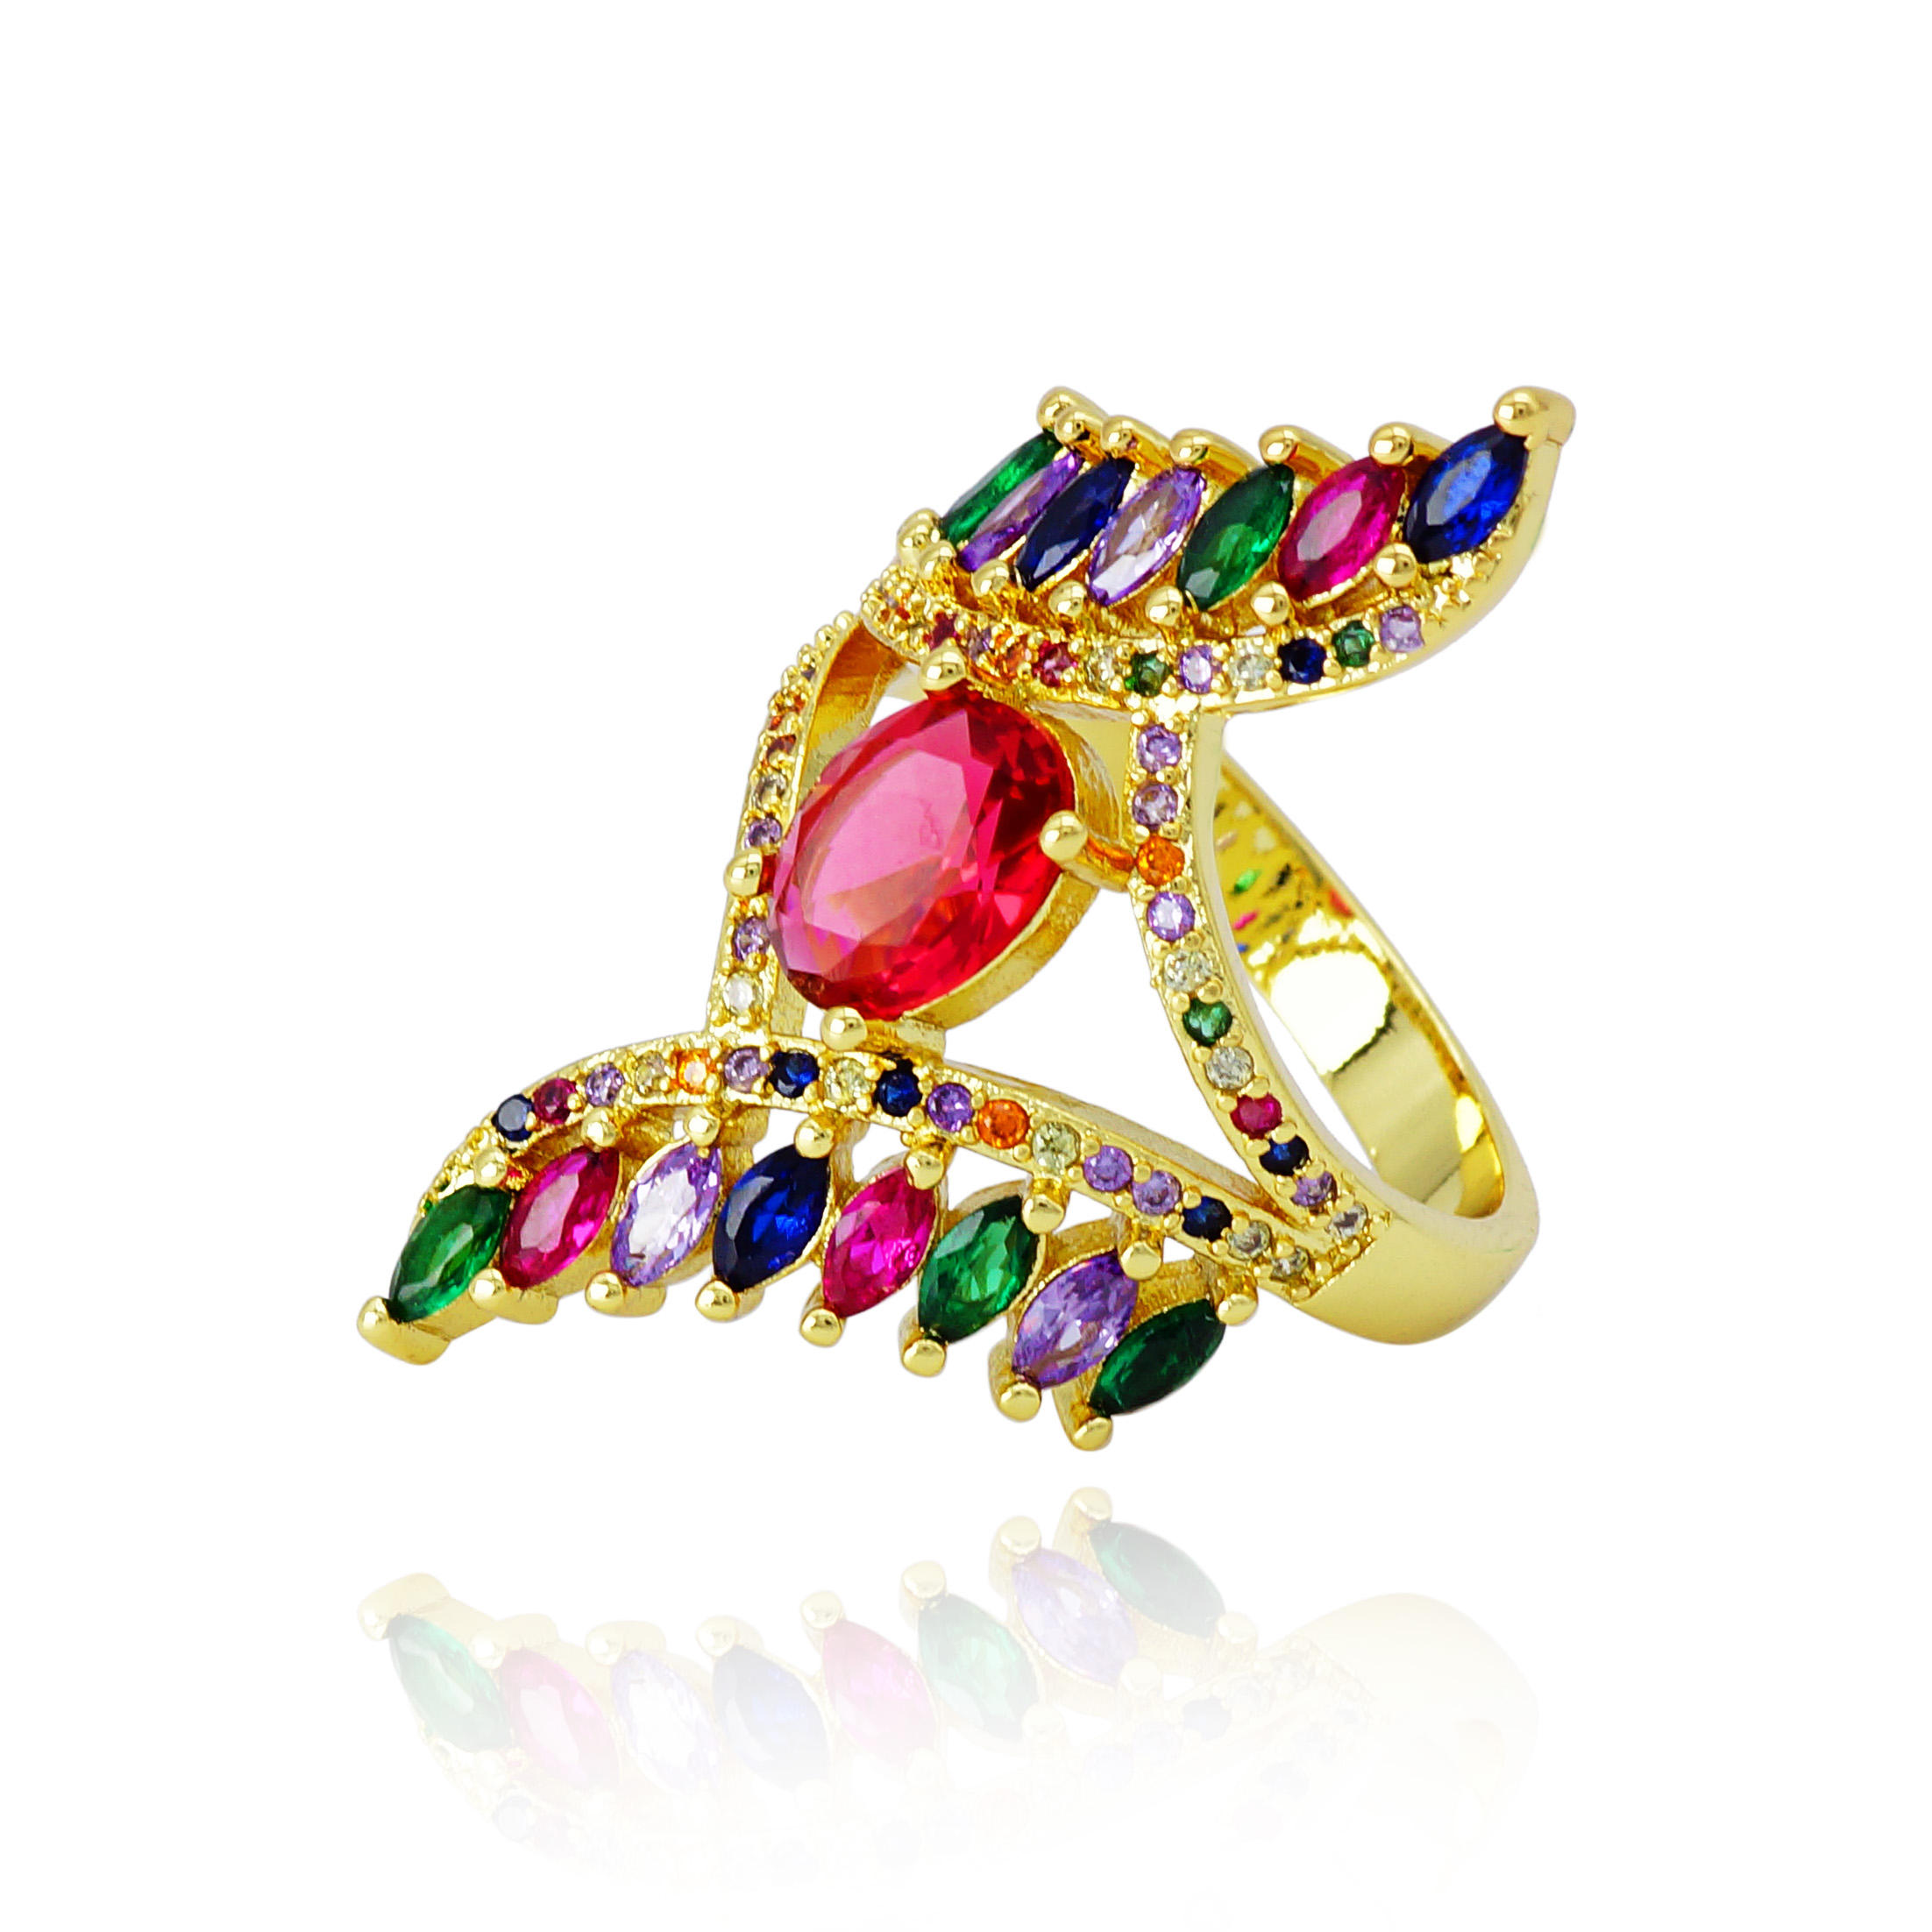 Bling Strass Gold Überzogene Bunte Zirkonia Ring 3 Tag <span class=keywords><strong>Liefern</strong></span> Geschenk Ringe